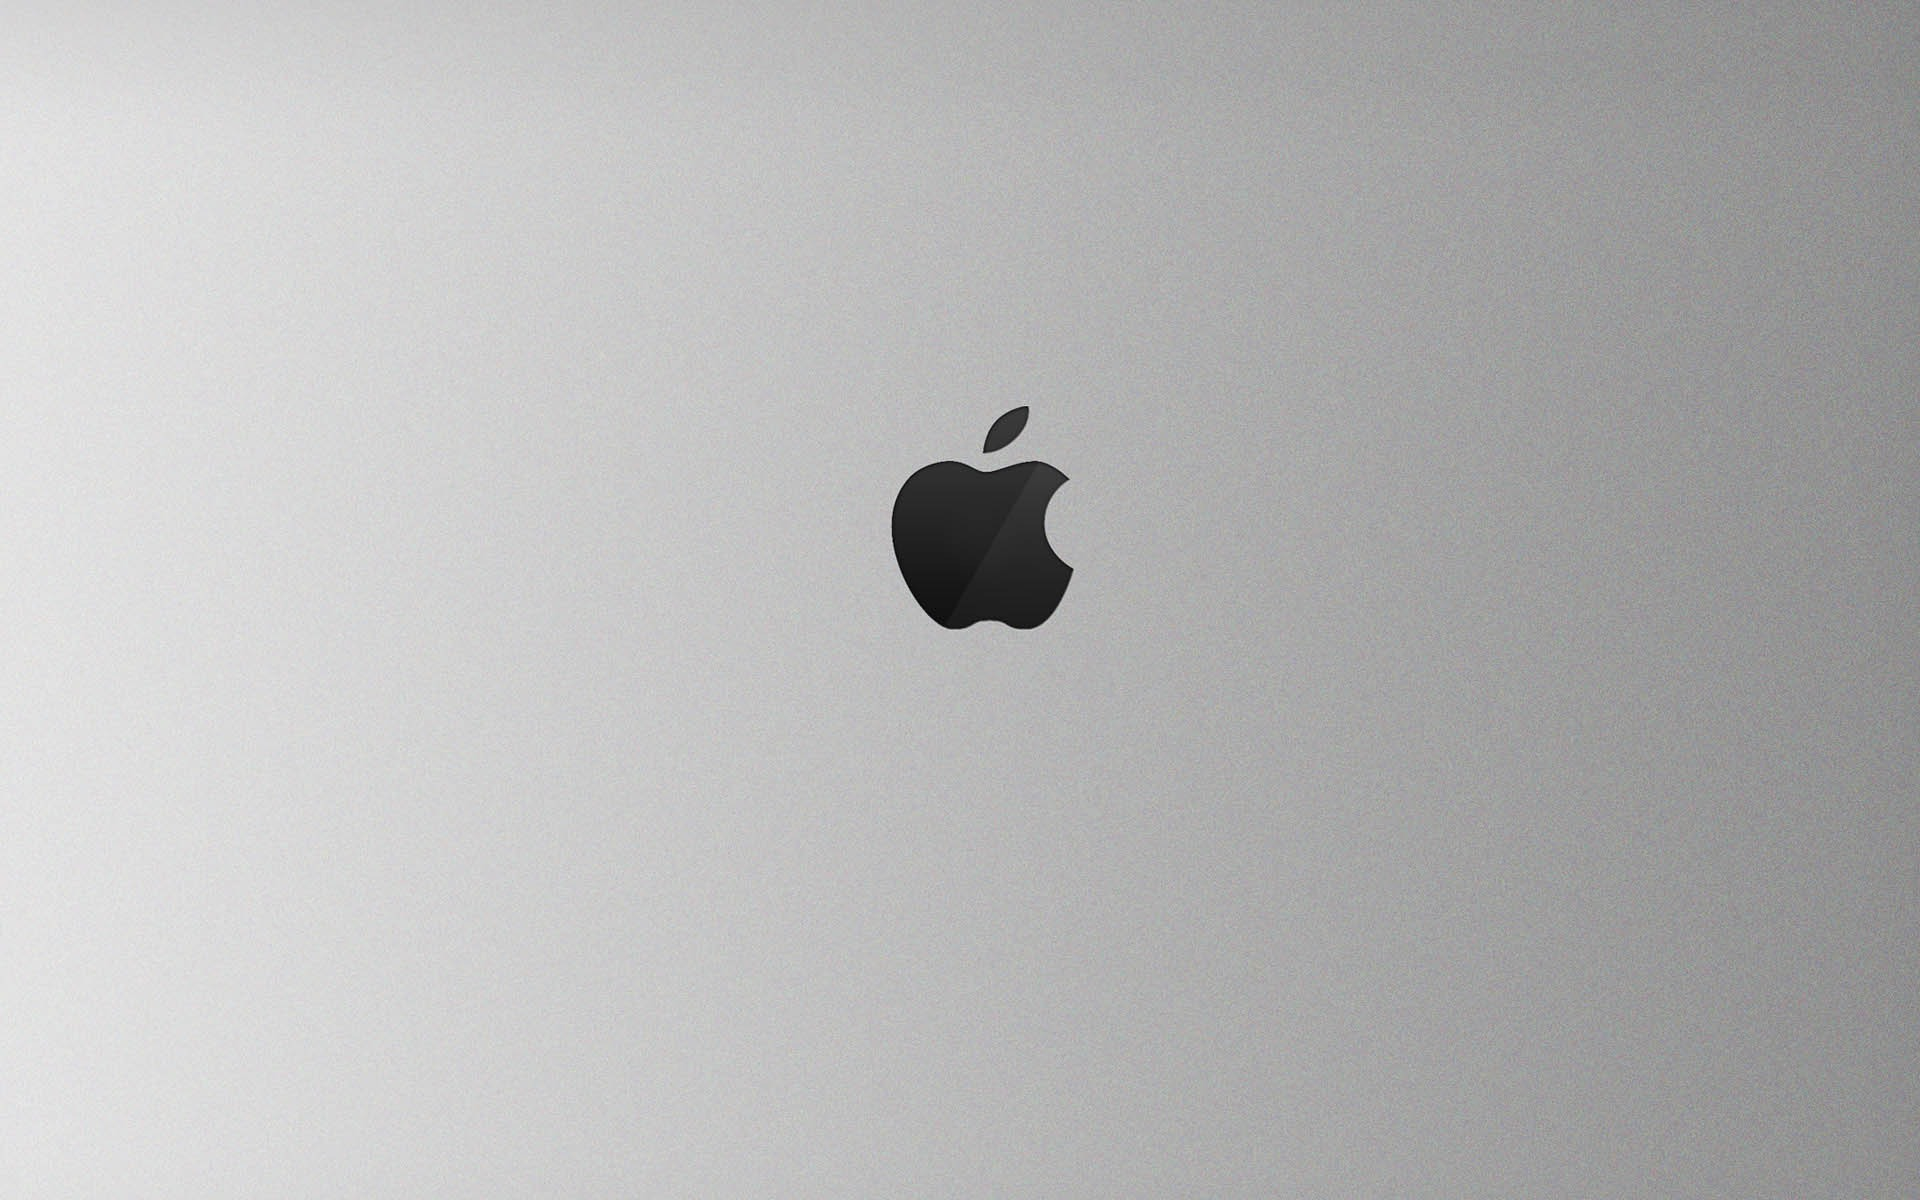 Apple Black and White HD Wallpaper For Mac 1920x1200